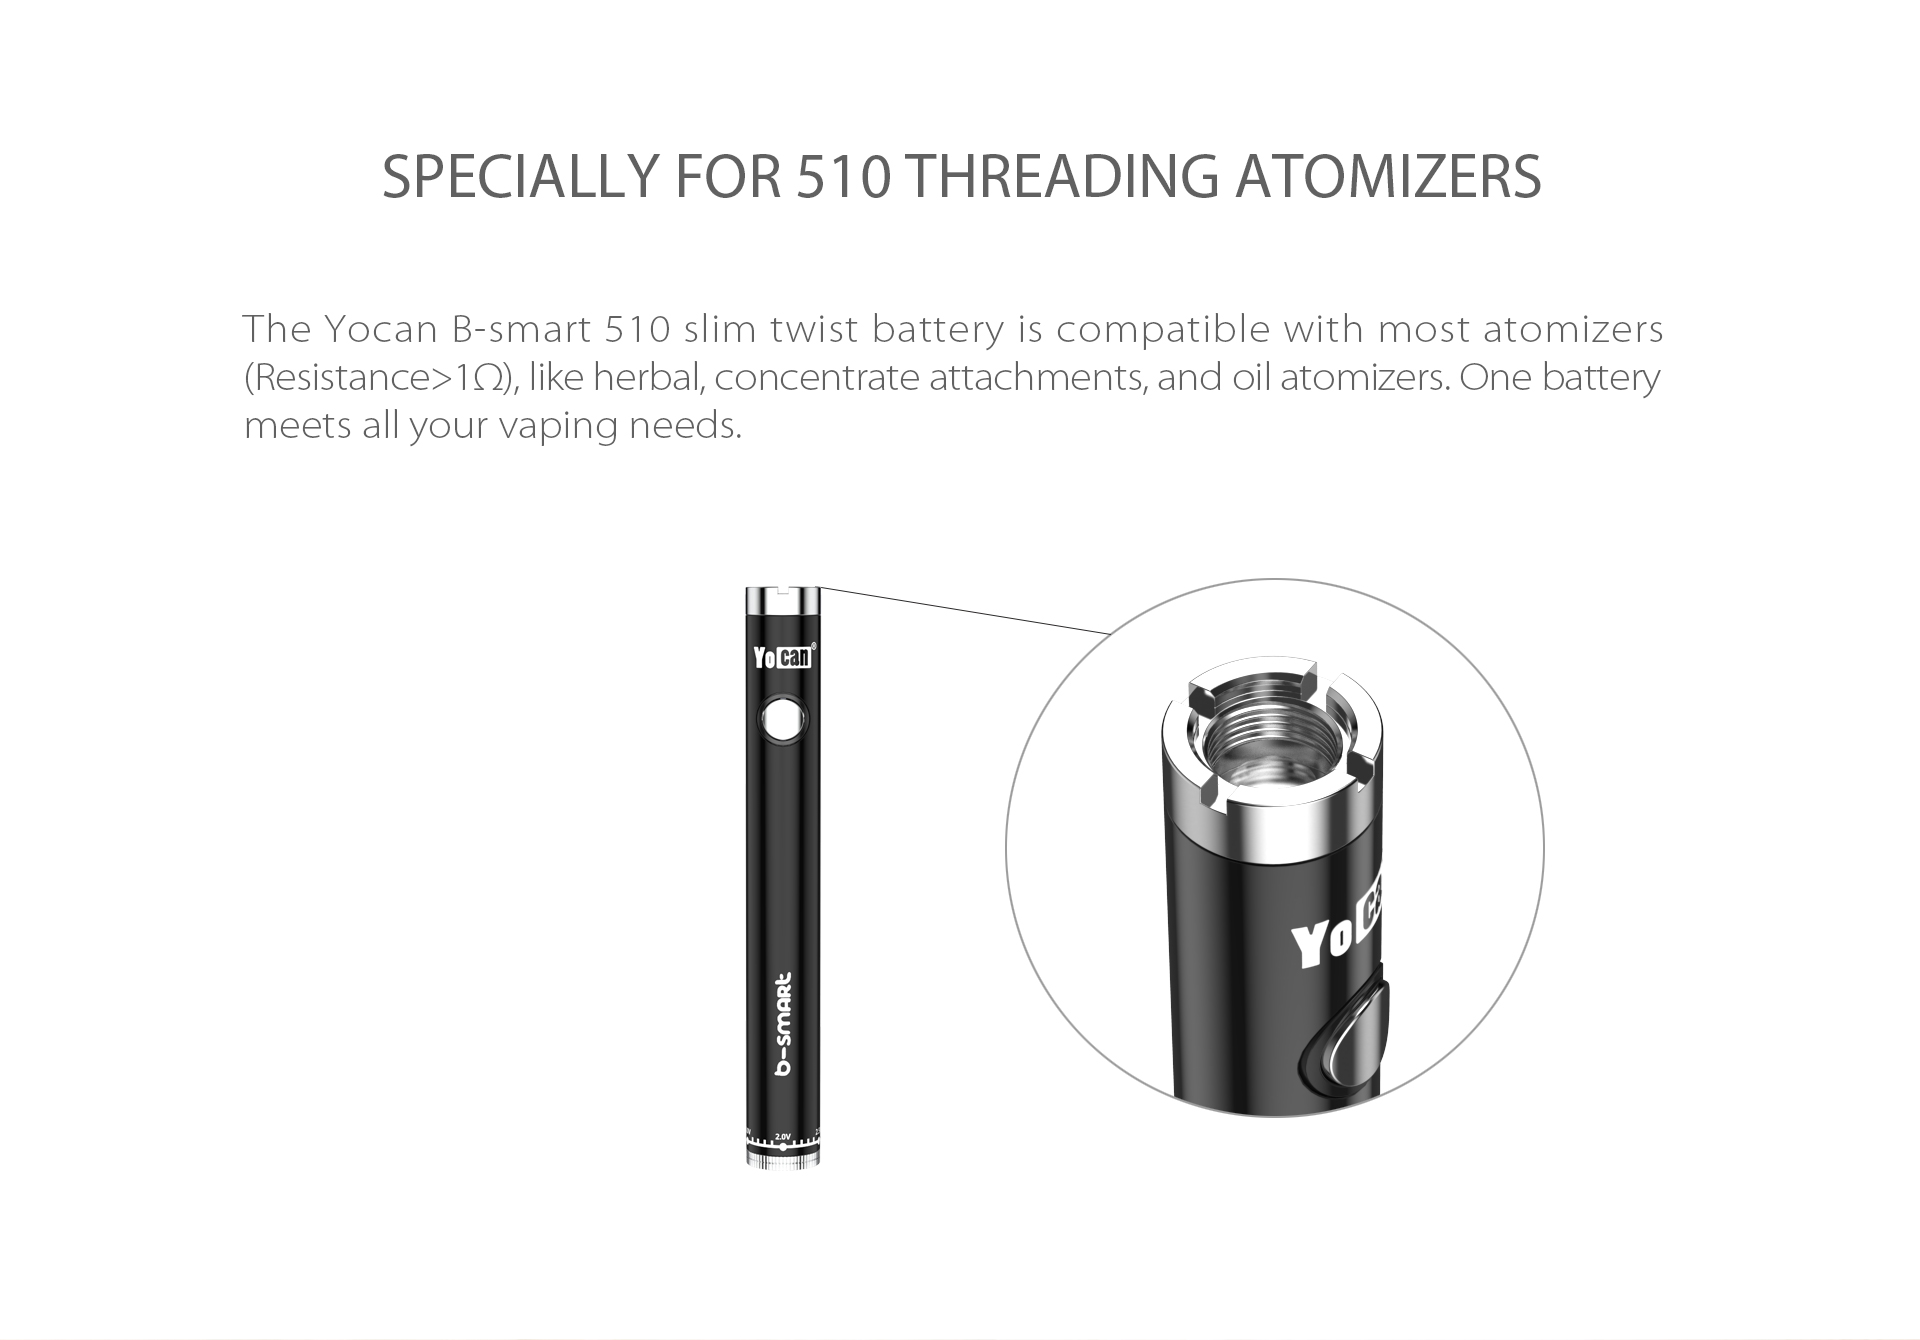 Yocan B-smart vape pen battery specially for 510 threading atomizers.